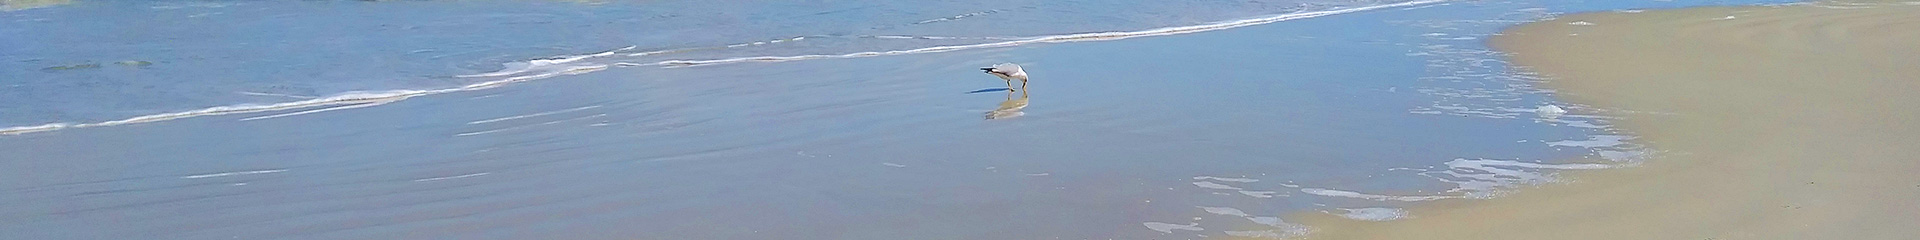 Beach image with seagull